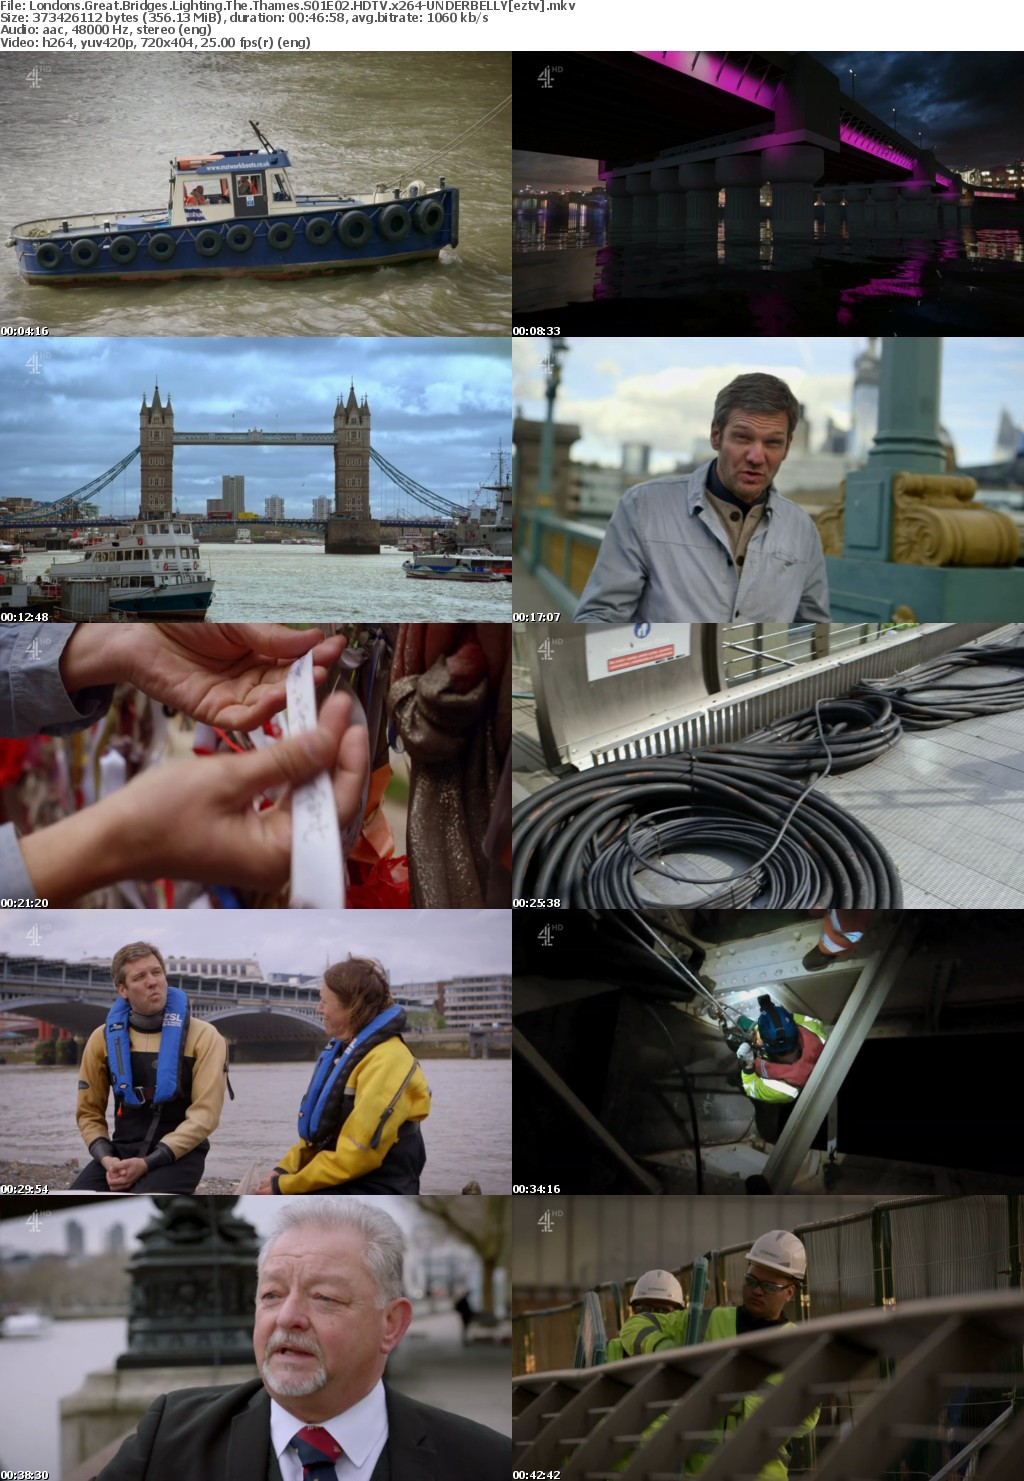 Londons Great Bridges Lighting The Thames S01E02 HDTV x264 UNDERBELLY